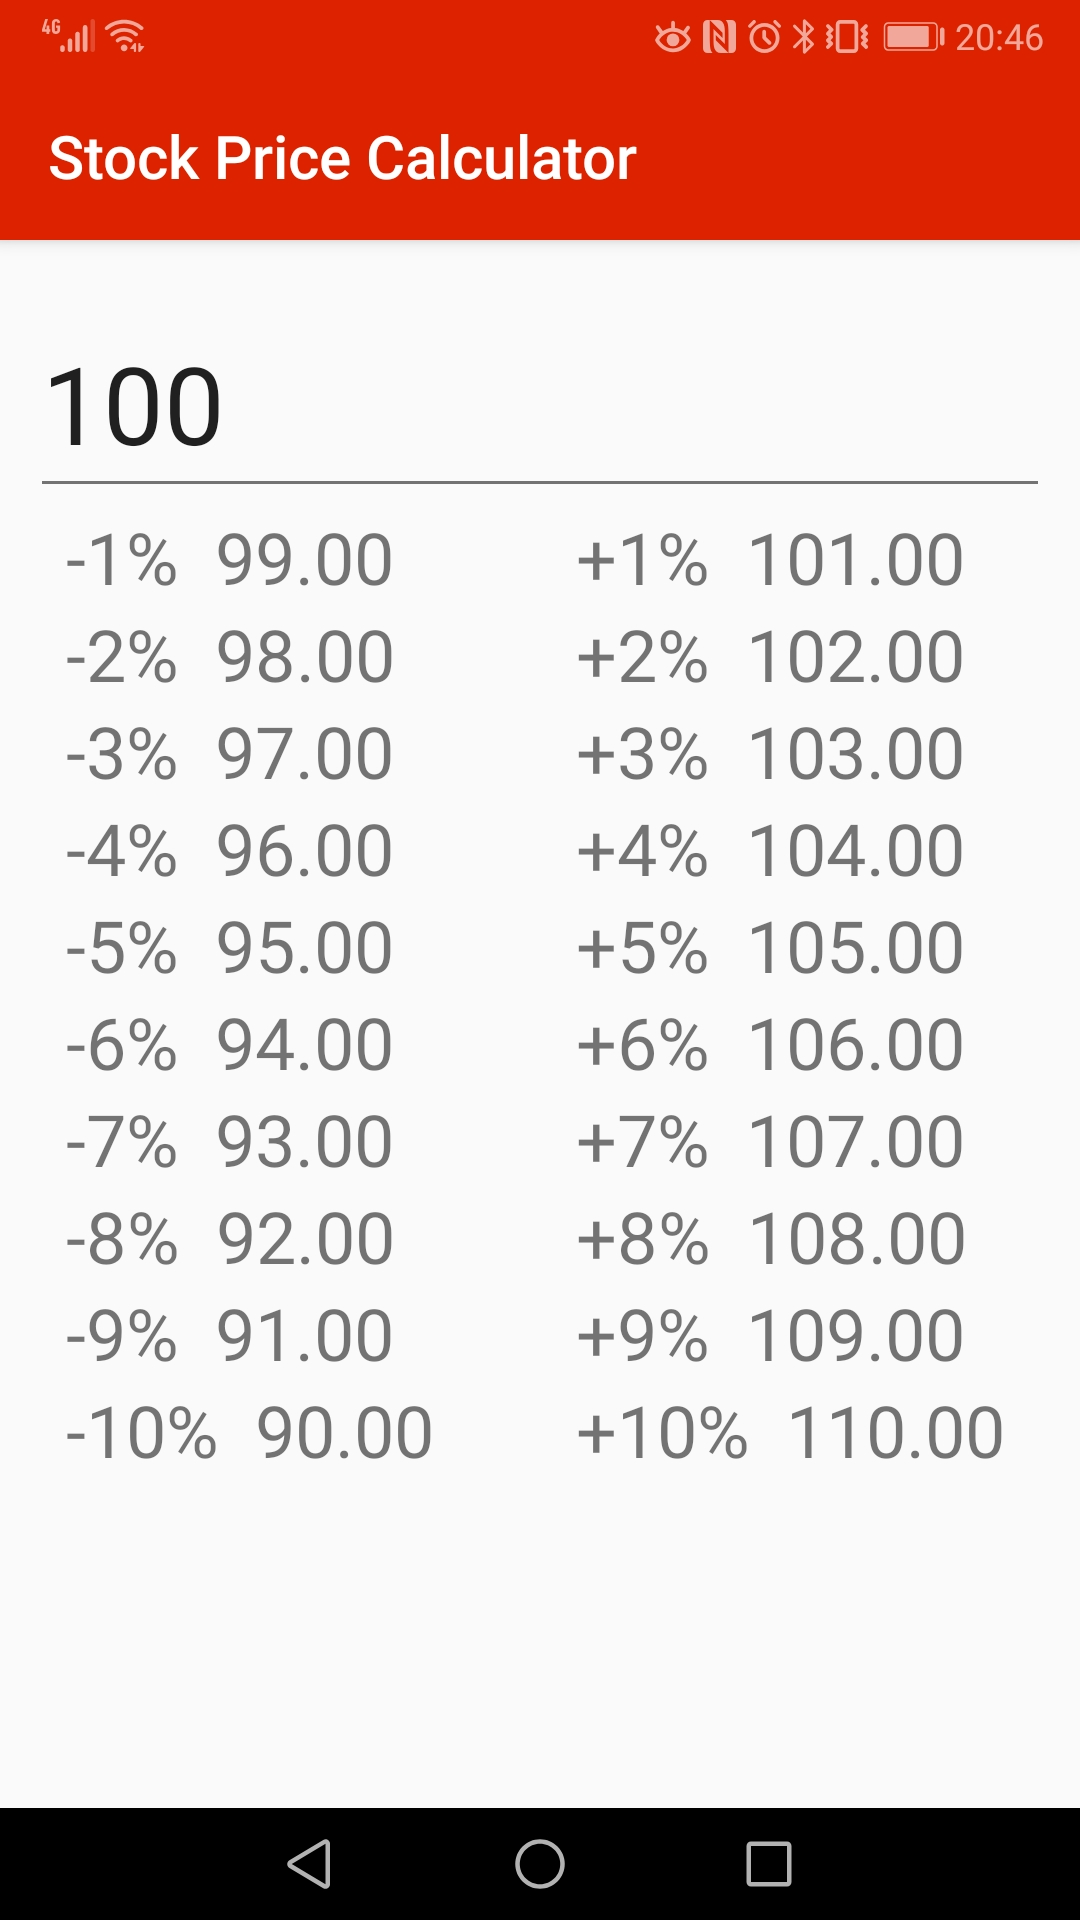 Stock Price Calculator - Android APP